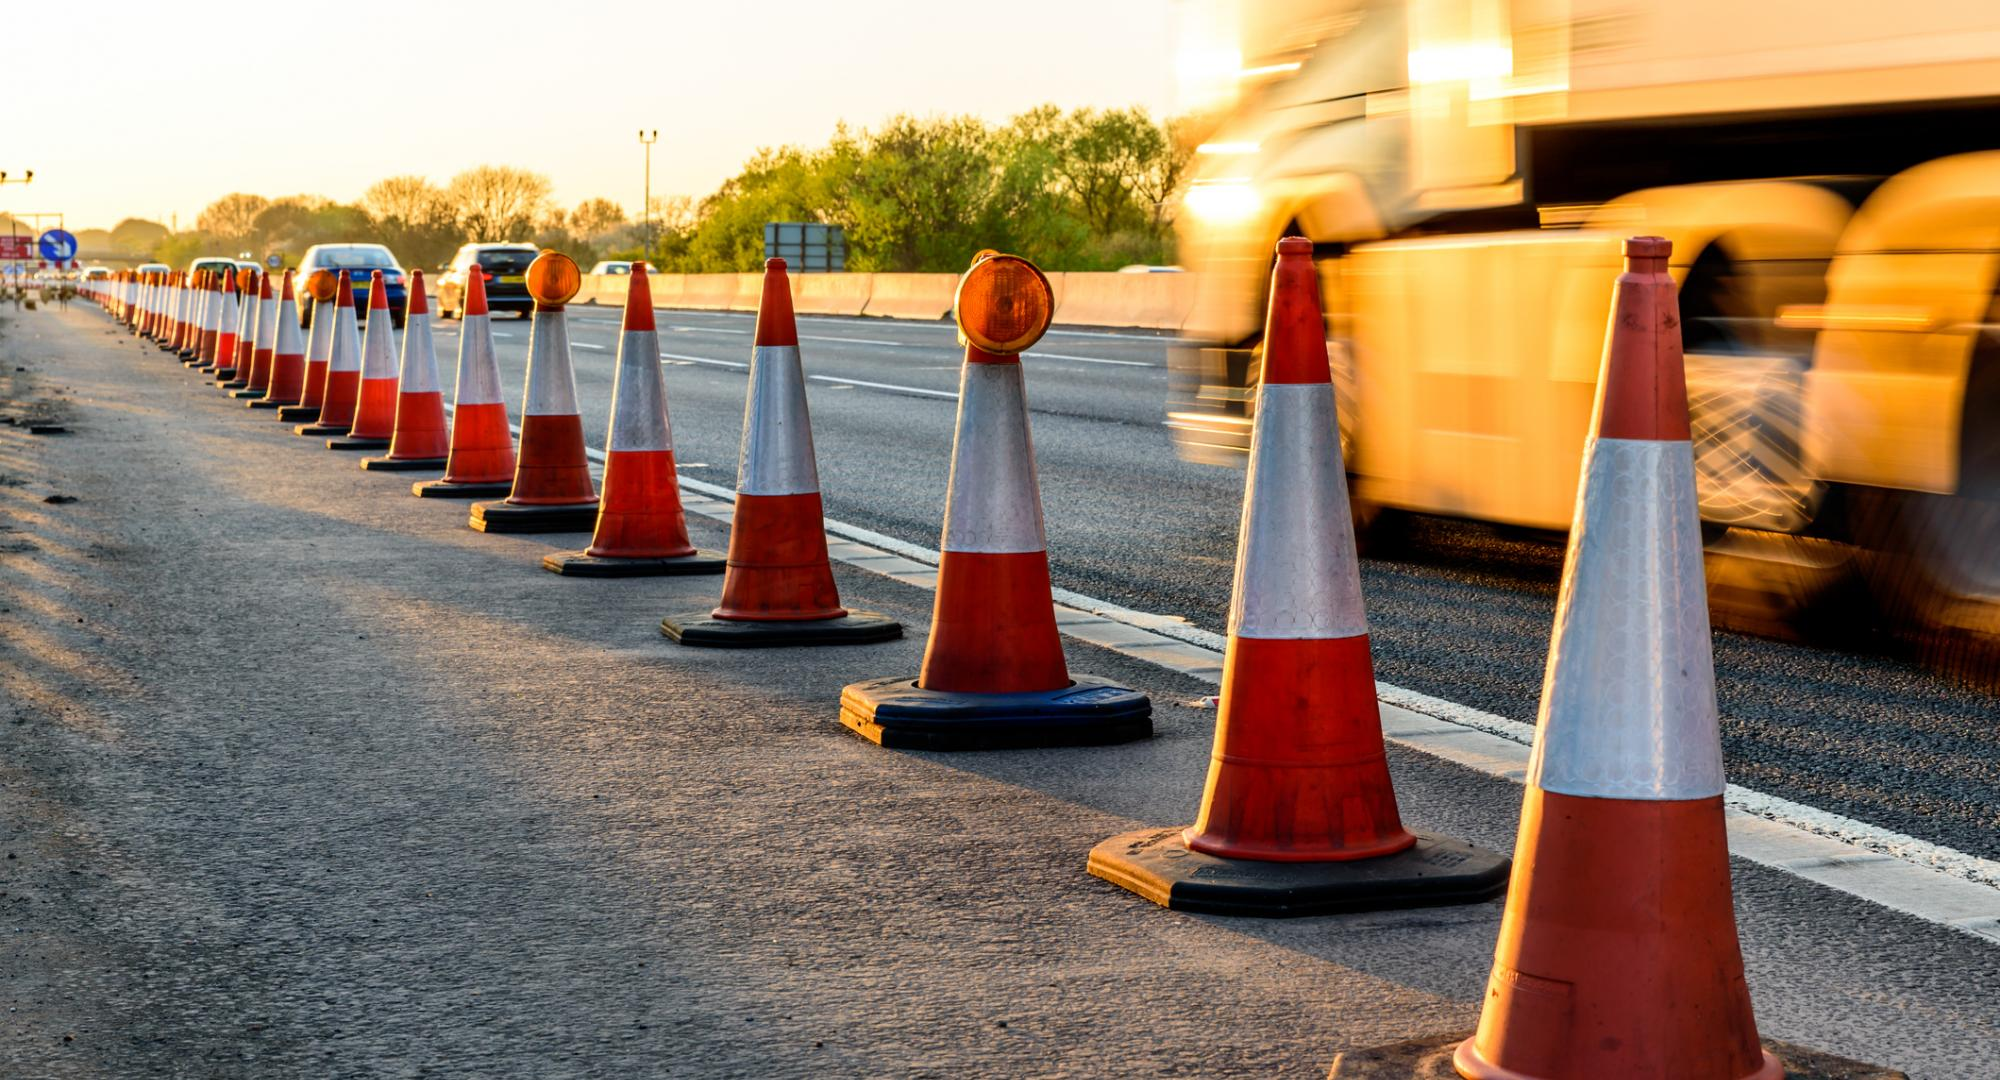 Traffic cones alongside a road